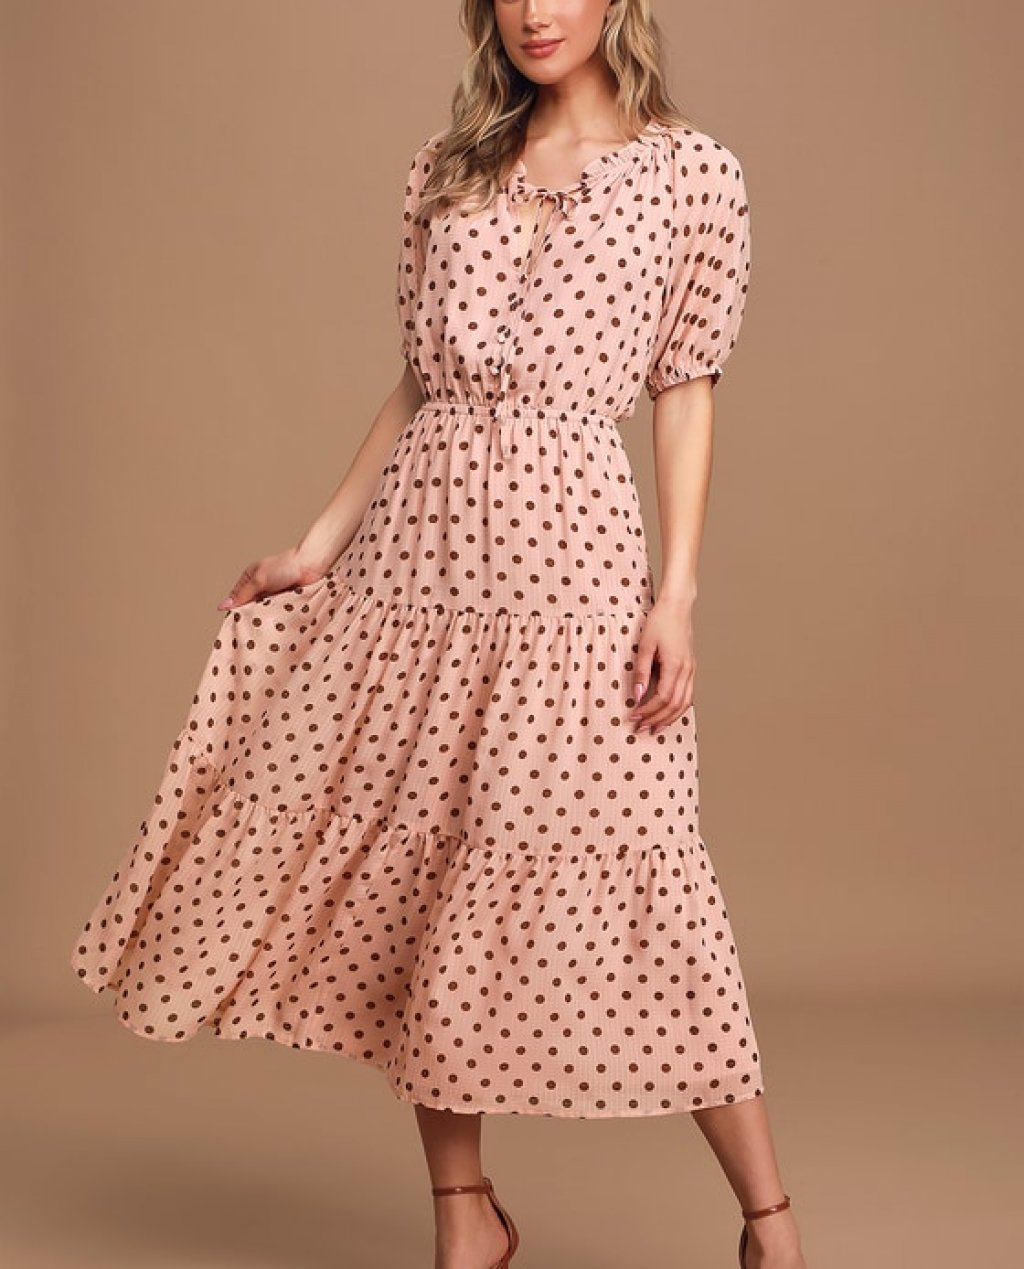 Love You Tier Ly Blush Pink Polka Dot Tiered Midi Dress Online Fashion Store